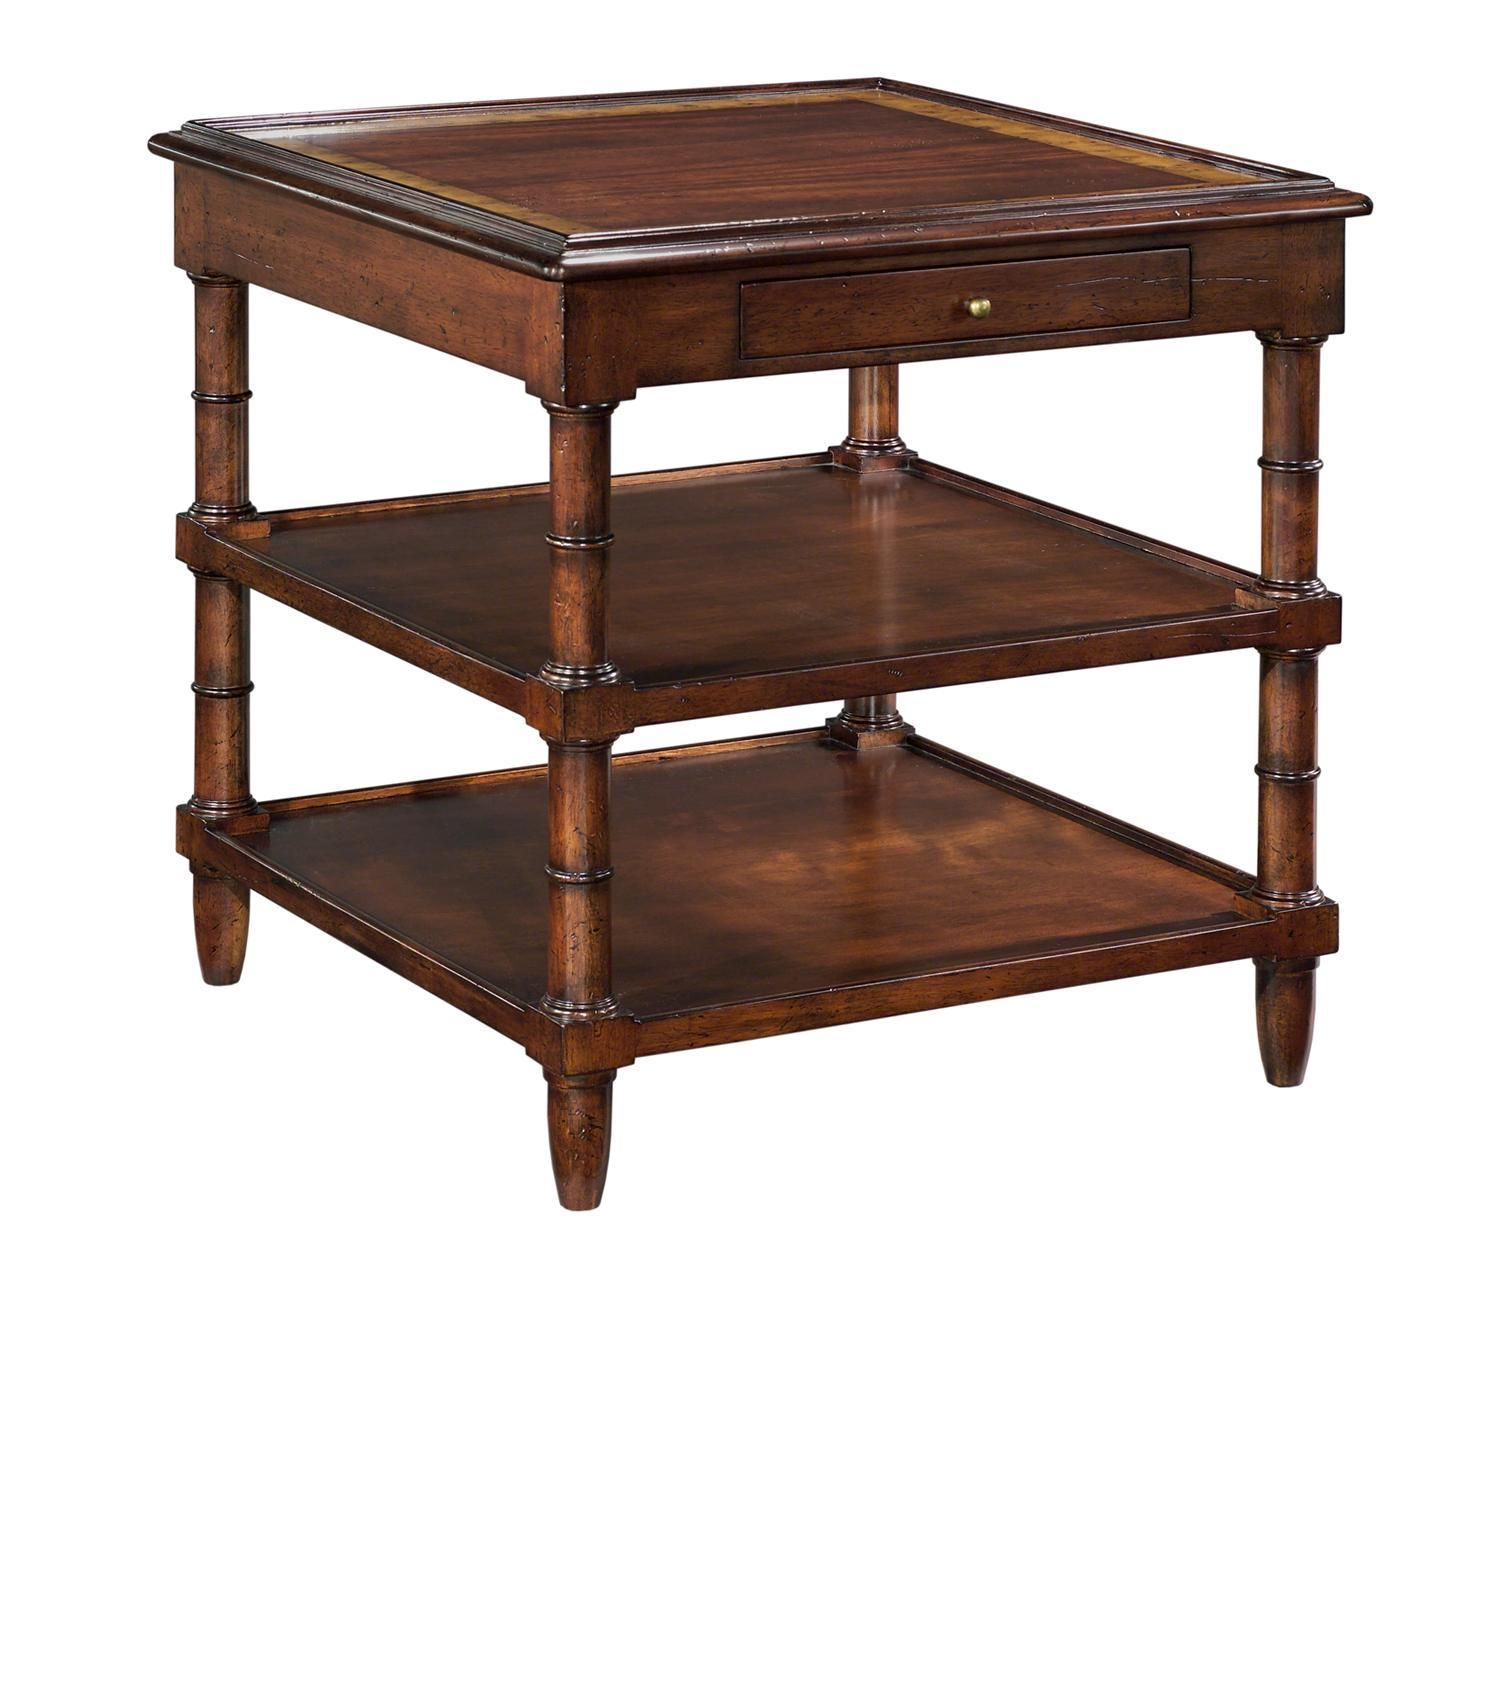 "Woodbridge 1060-01 Regency side table 27"" square X 27 ..."